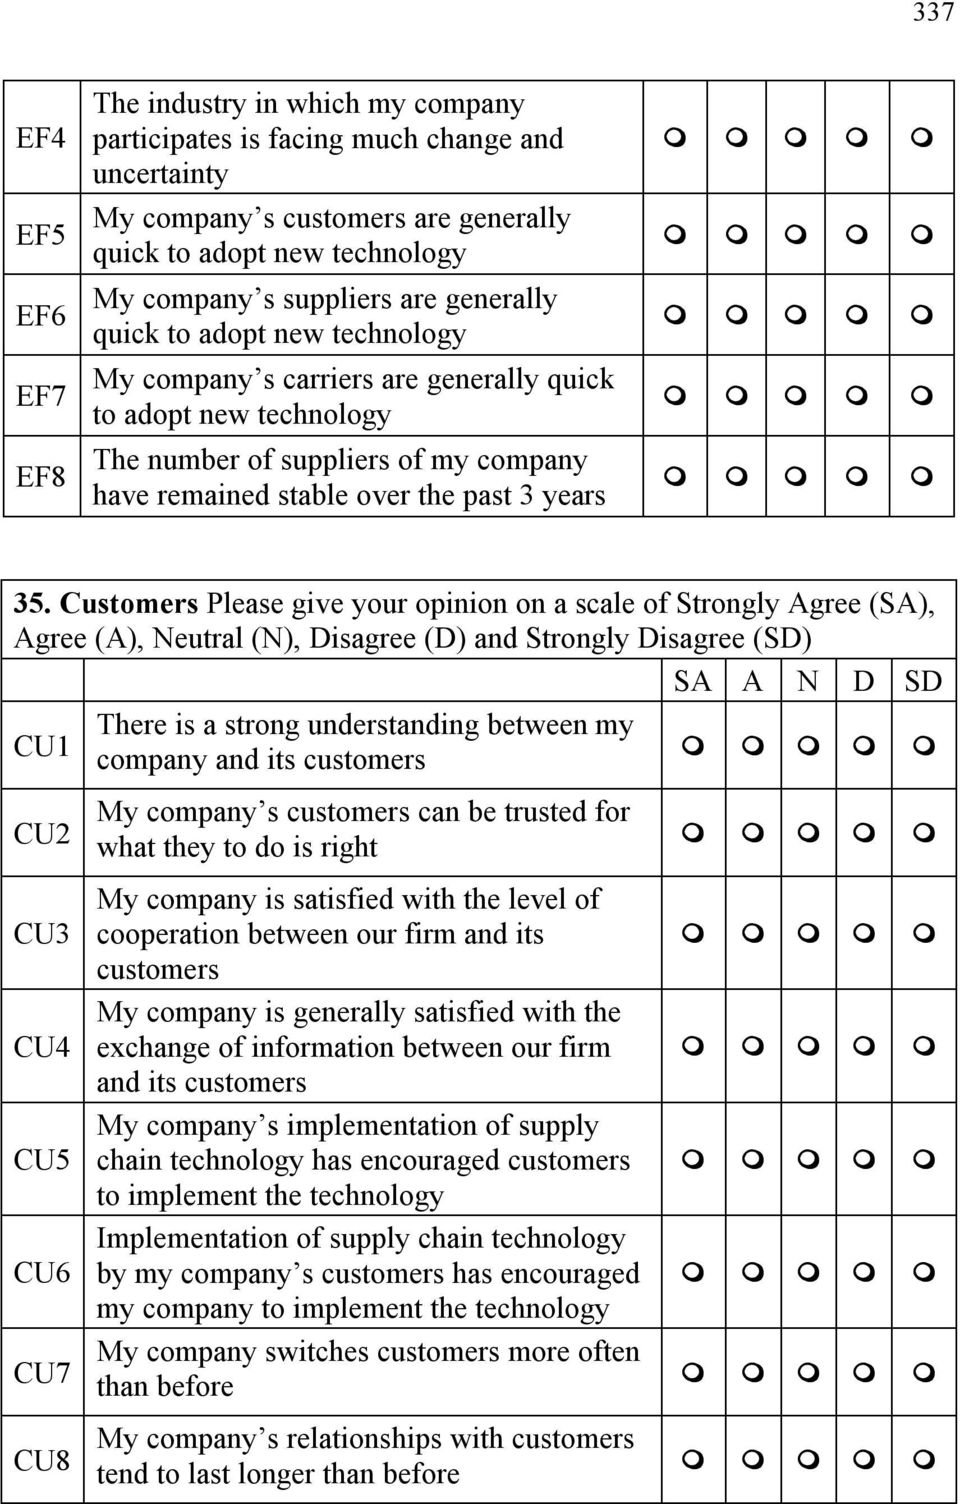 Customers Please give your opinion on a scale of Strongly Agree (SA), Agree (A), Neutral (N), Disagree (D) and Strongly Disagree (SD) There is a strong understanding between my CU1 company and its